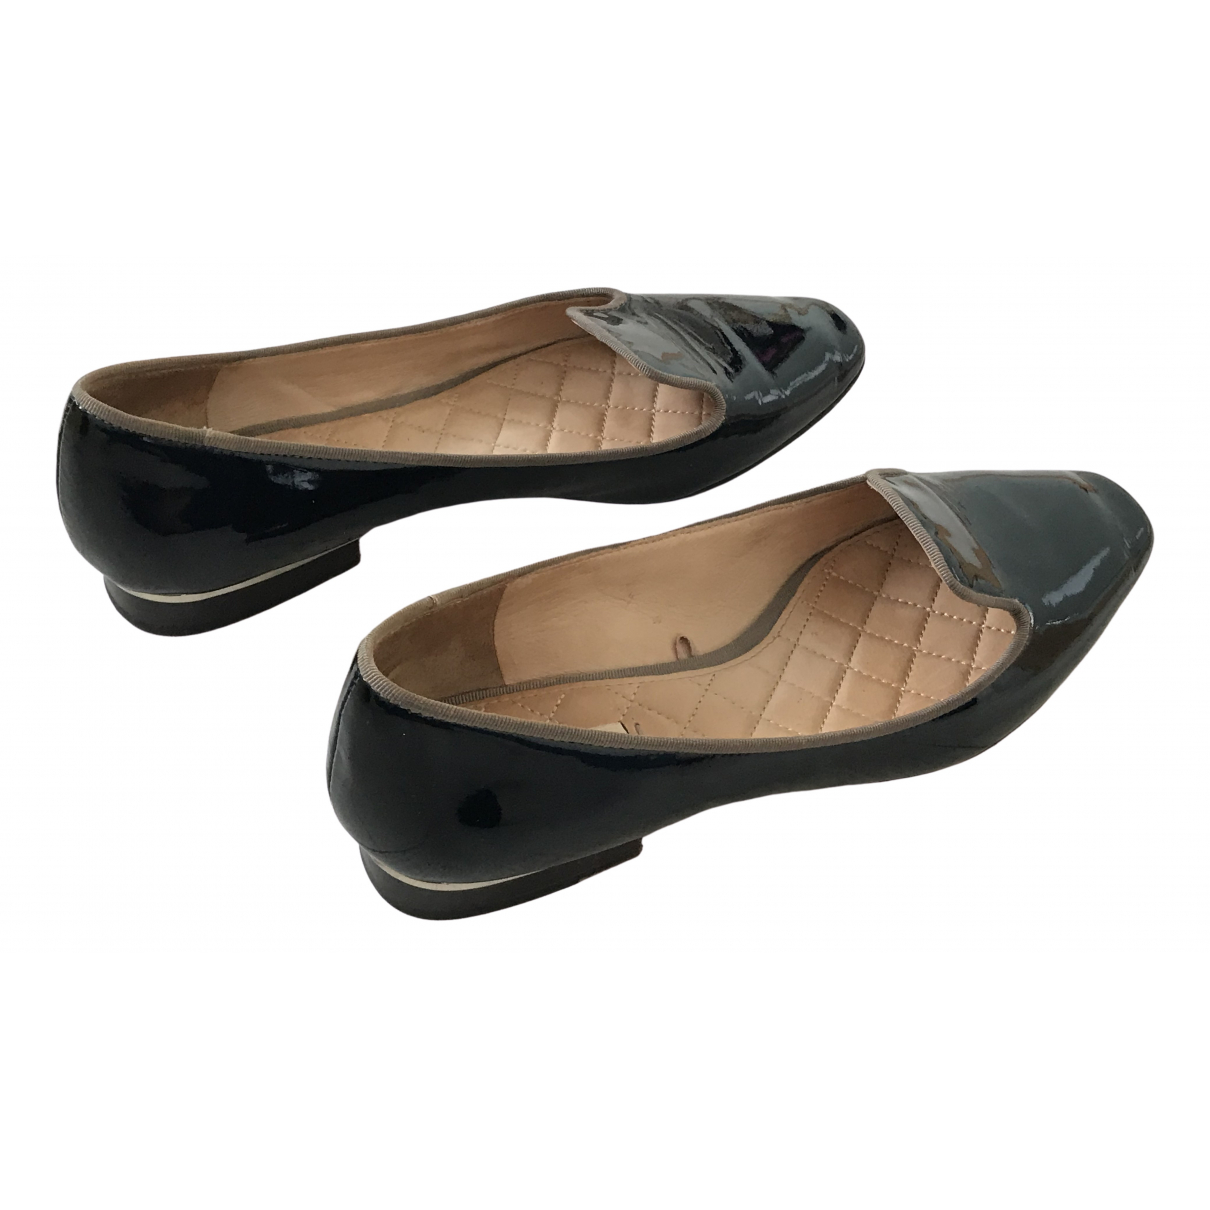 Massimo Dutti \N Black Patent leather Flats for Women 39 EU